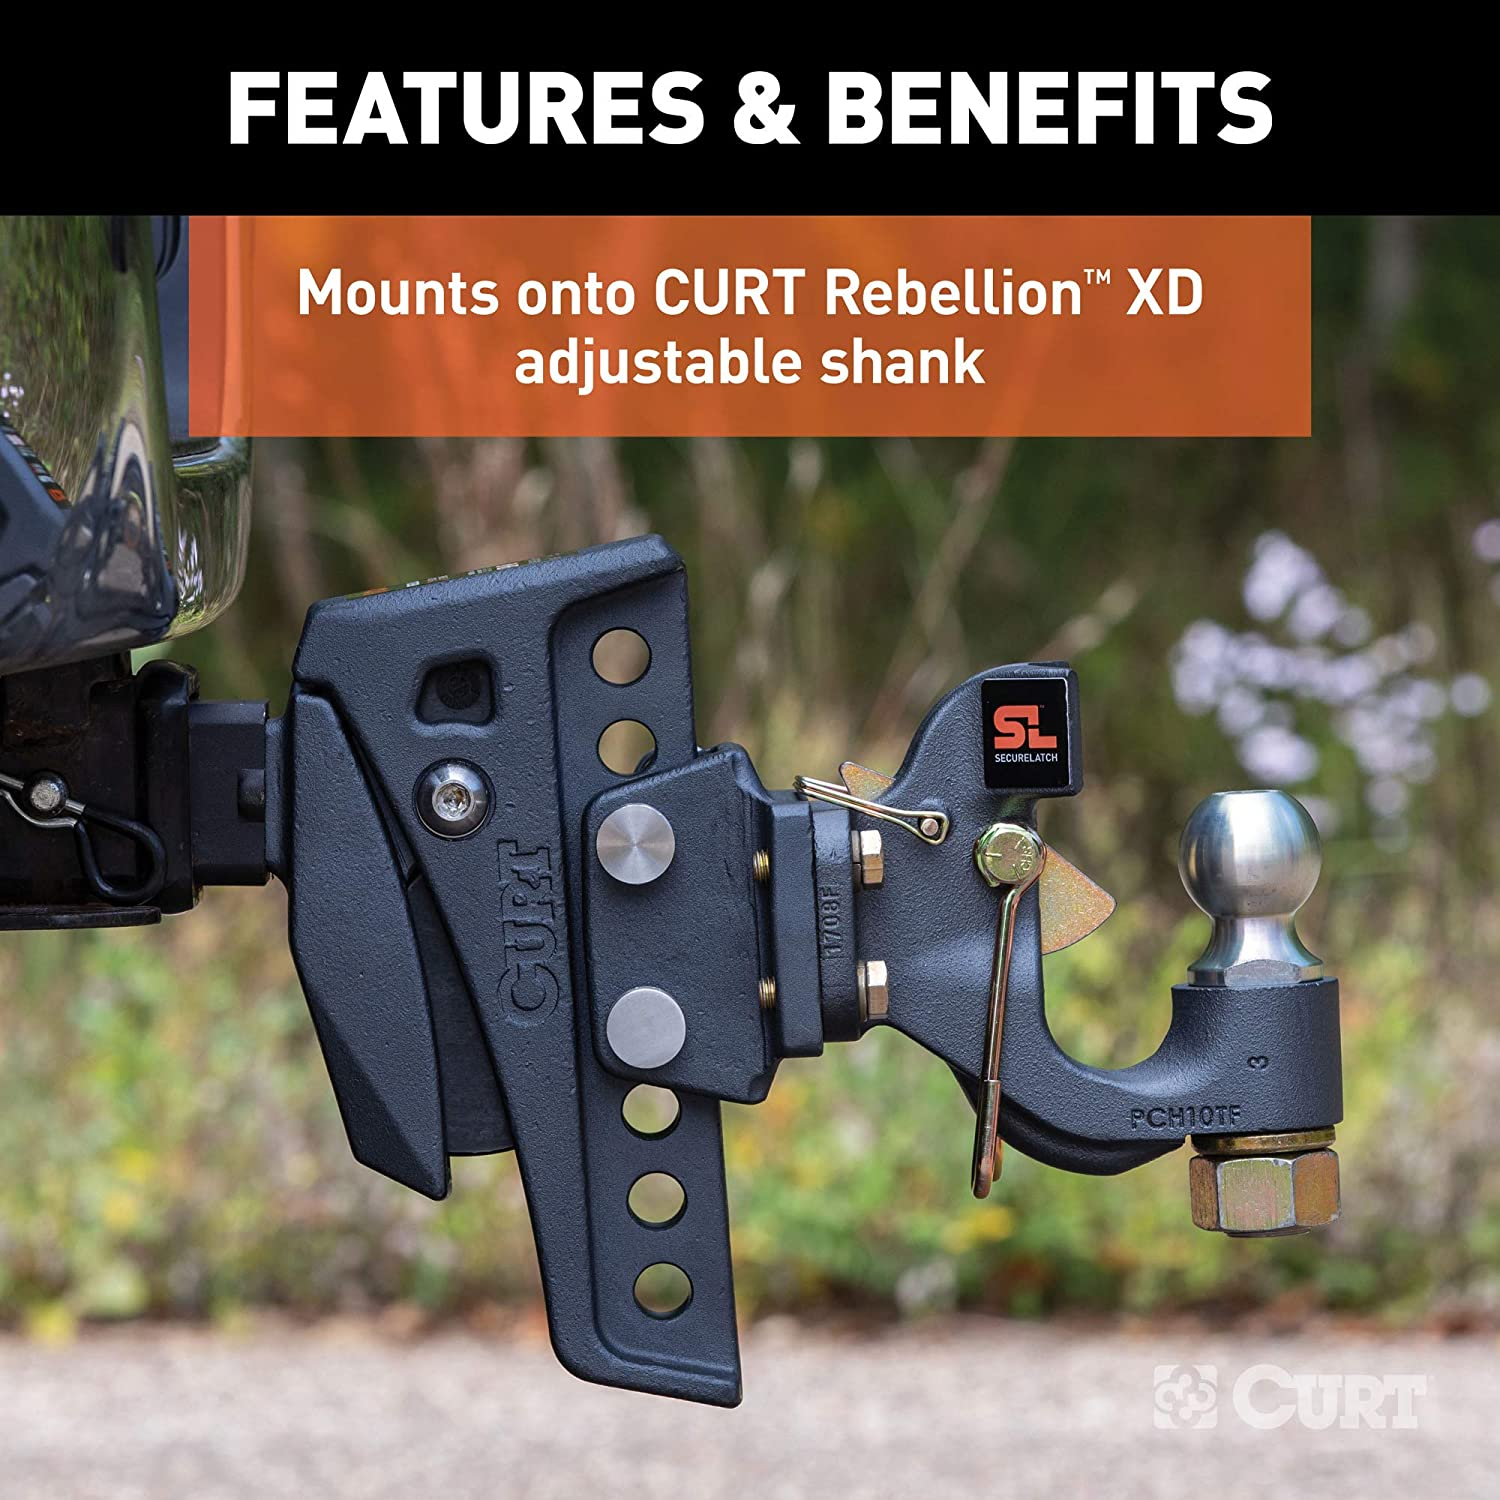 CURT 45950 Rebellion XD Adjustable Cushion Hitch Pintle Mount Plate Attachment Shank Required